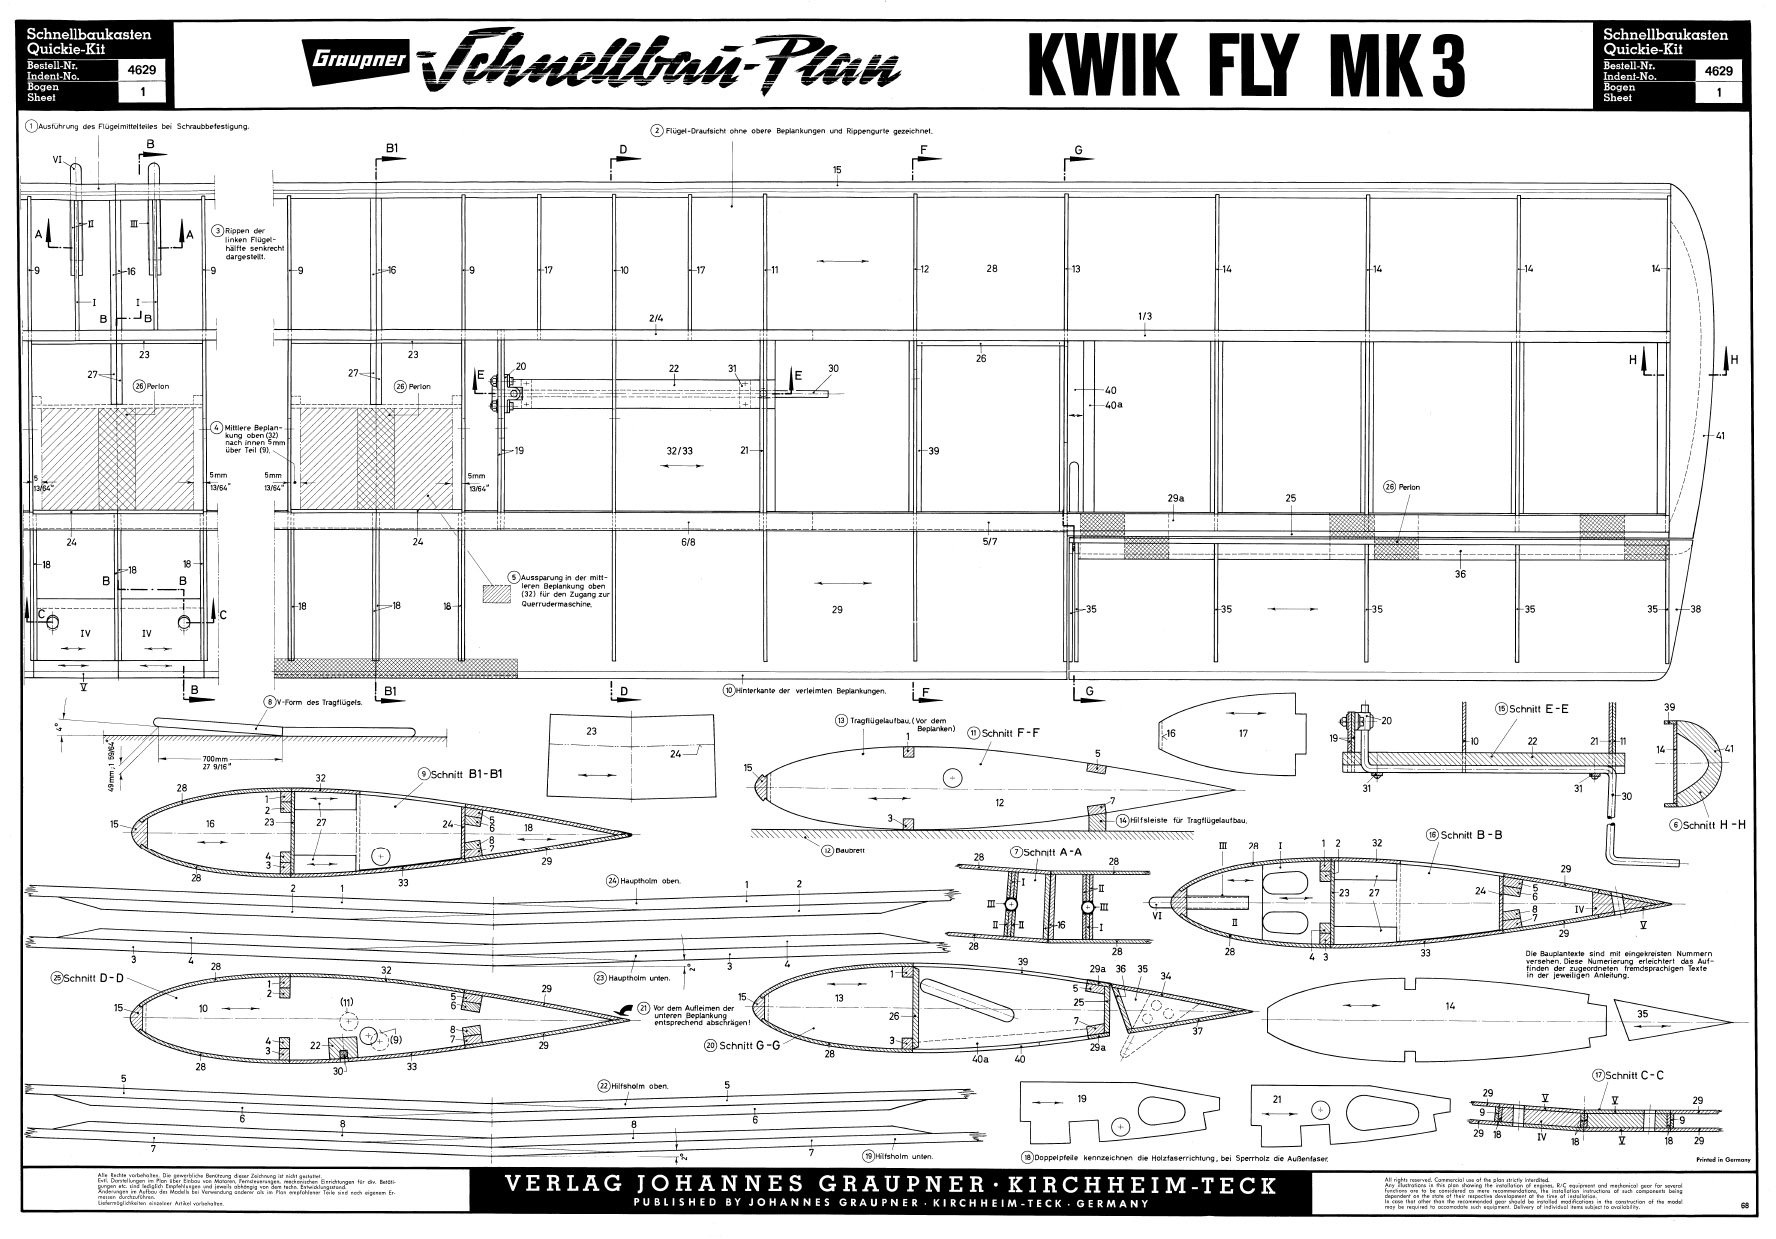 Liasse de plans pdf du Kwik FLy Mark 3 de Graupner